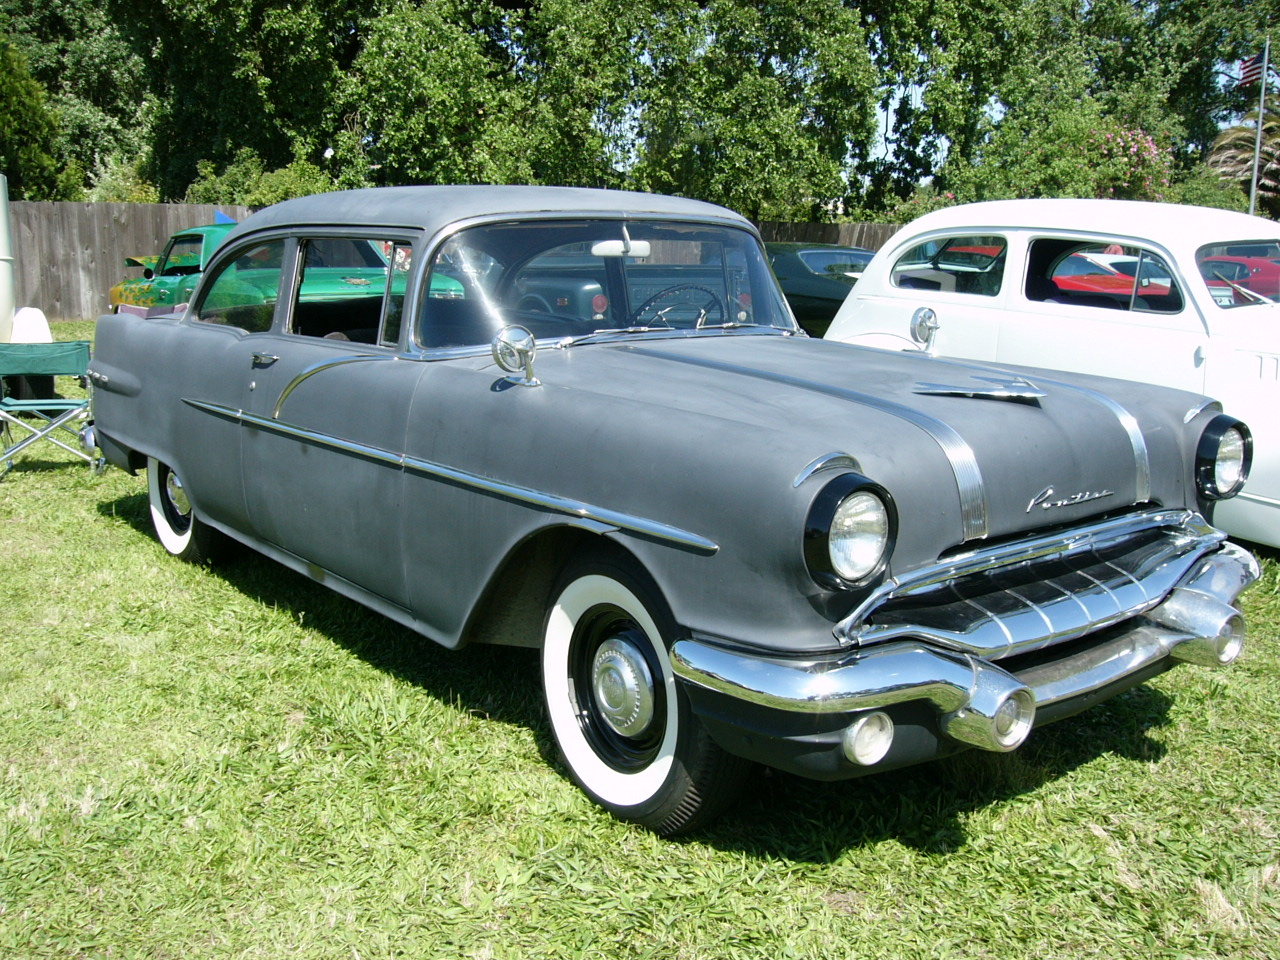 1956 Pontiac 860 2 dr sedan by RoadTripDog